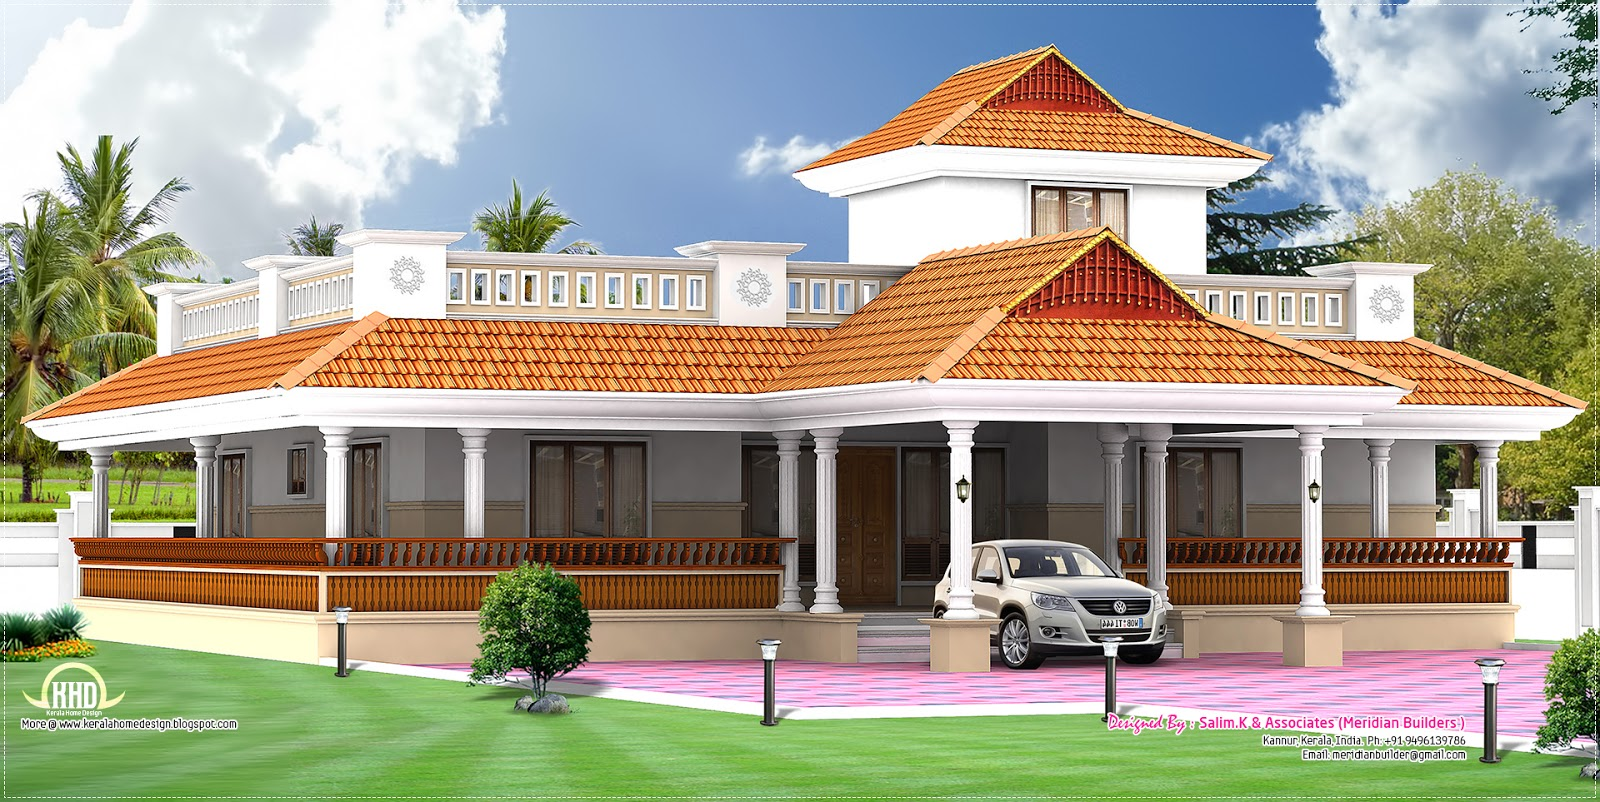 Kerala style vastu oriented 2 bedroom single storied residence house design plans Home design and vastu